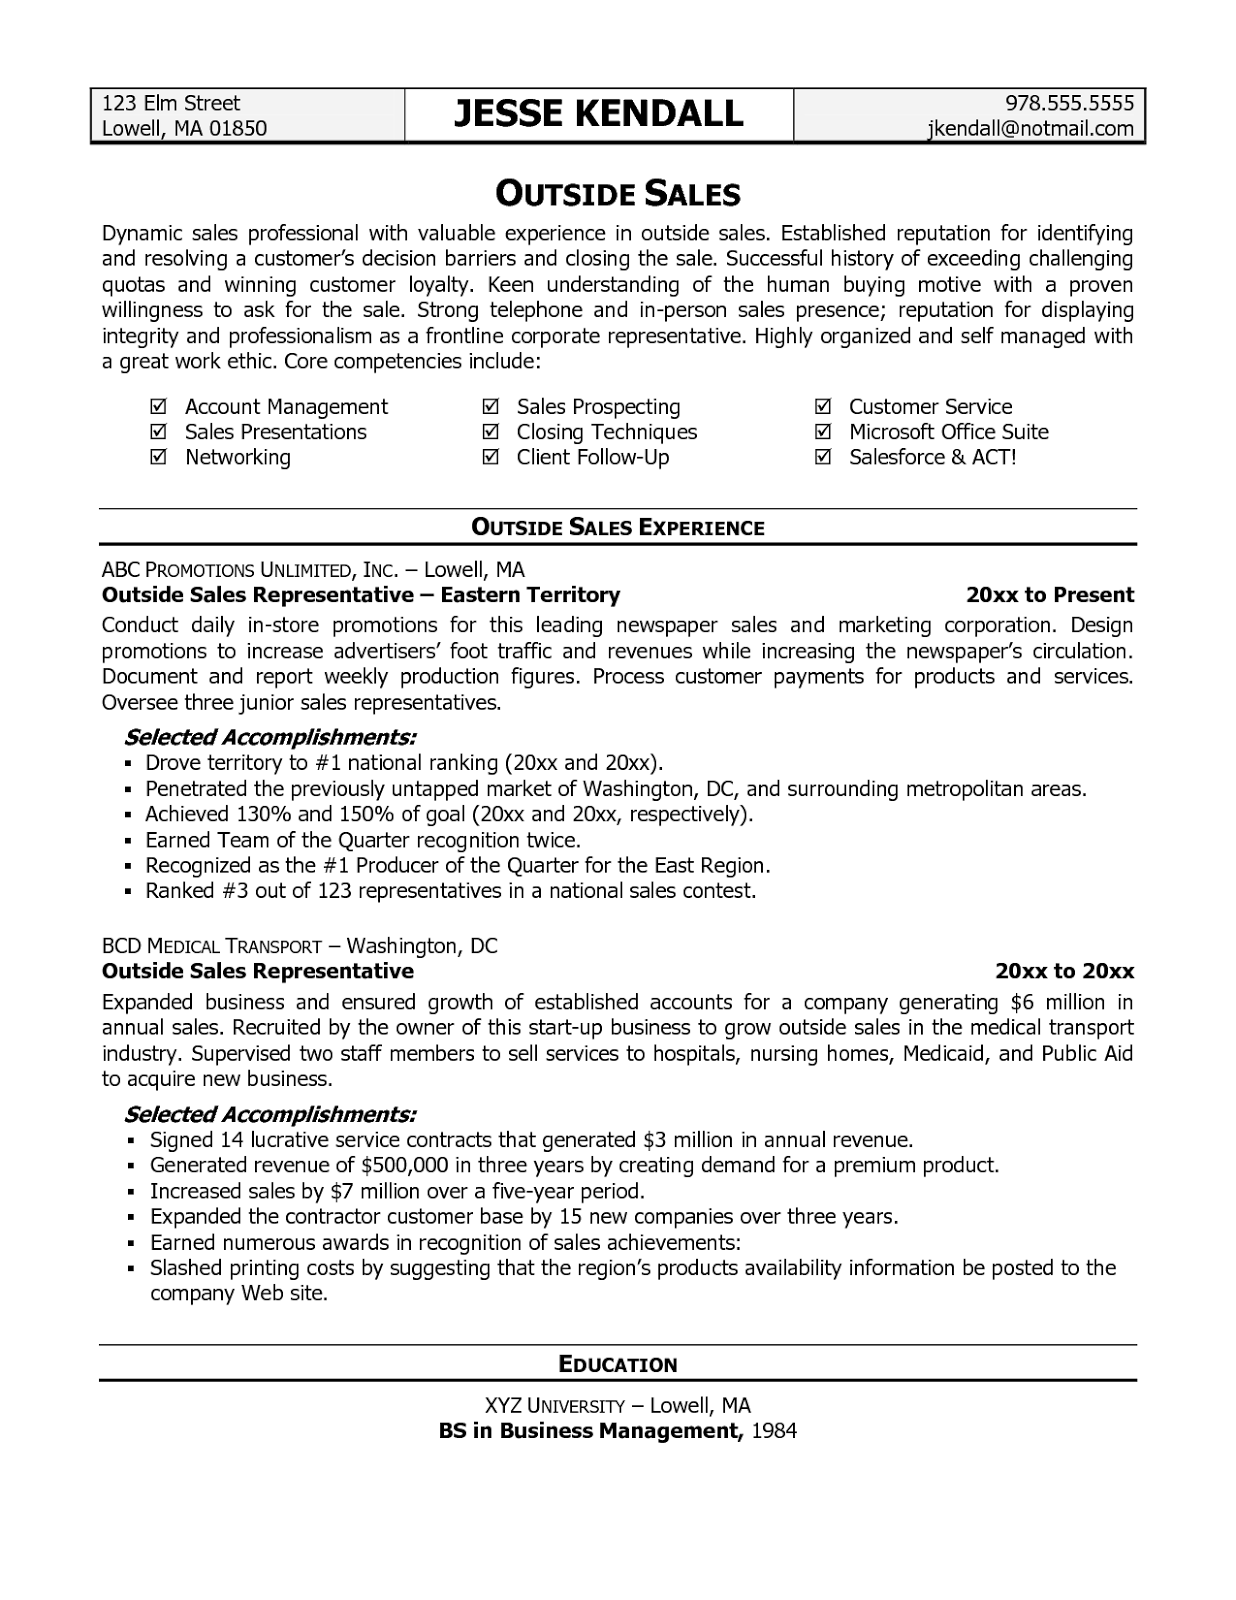 make my cv resume blank resume pdf winway resume